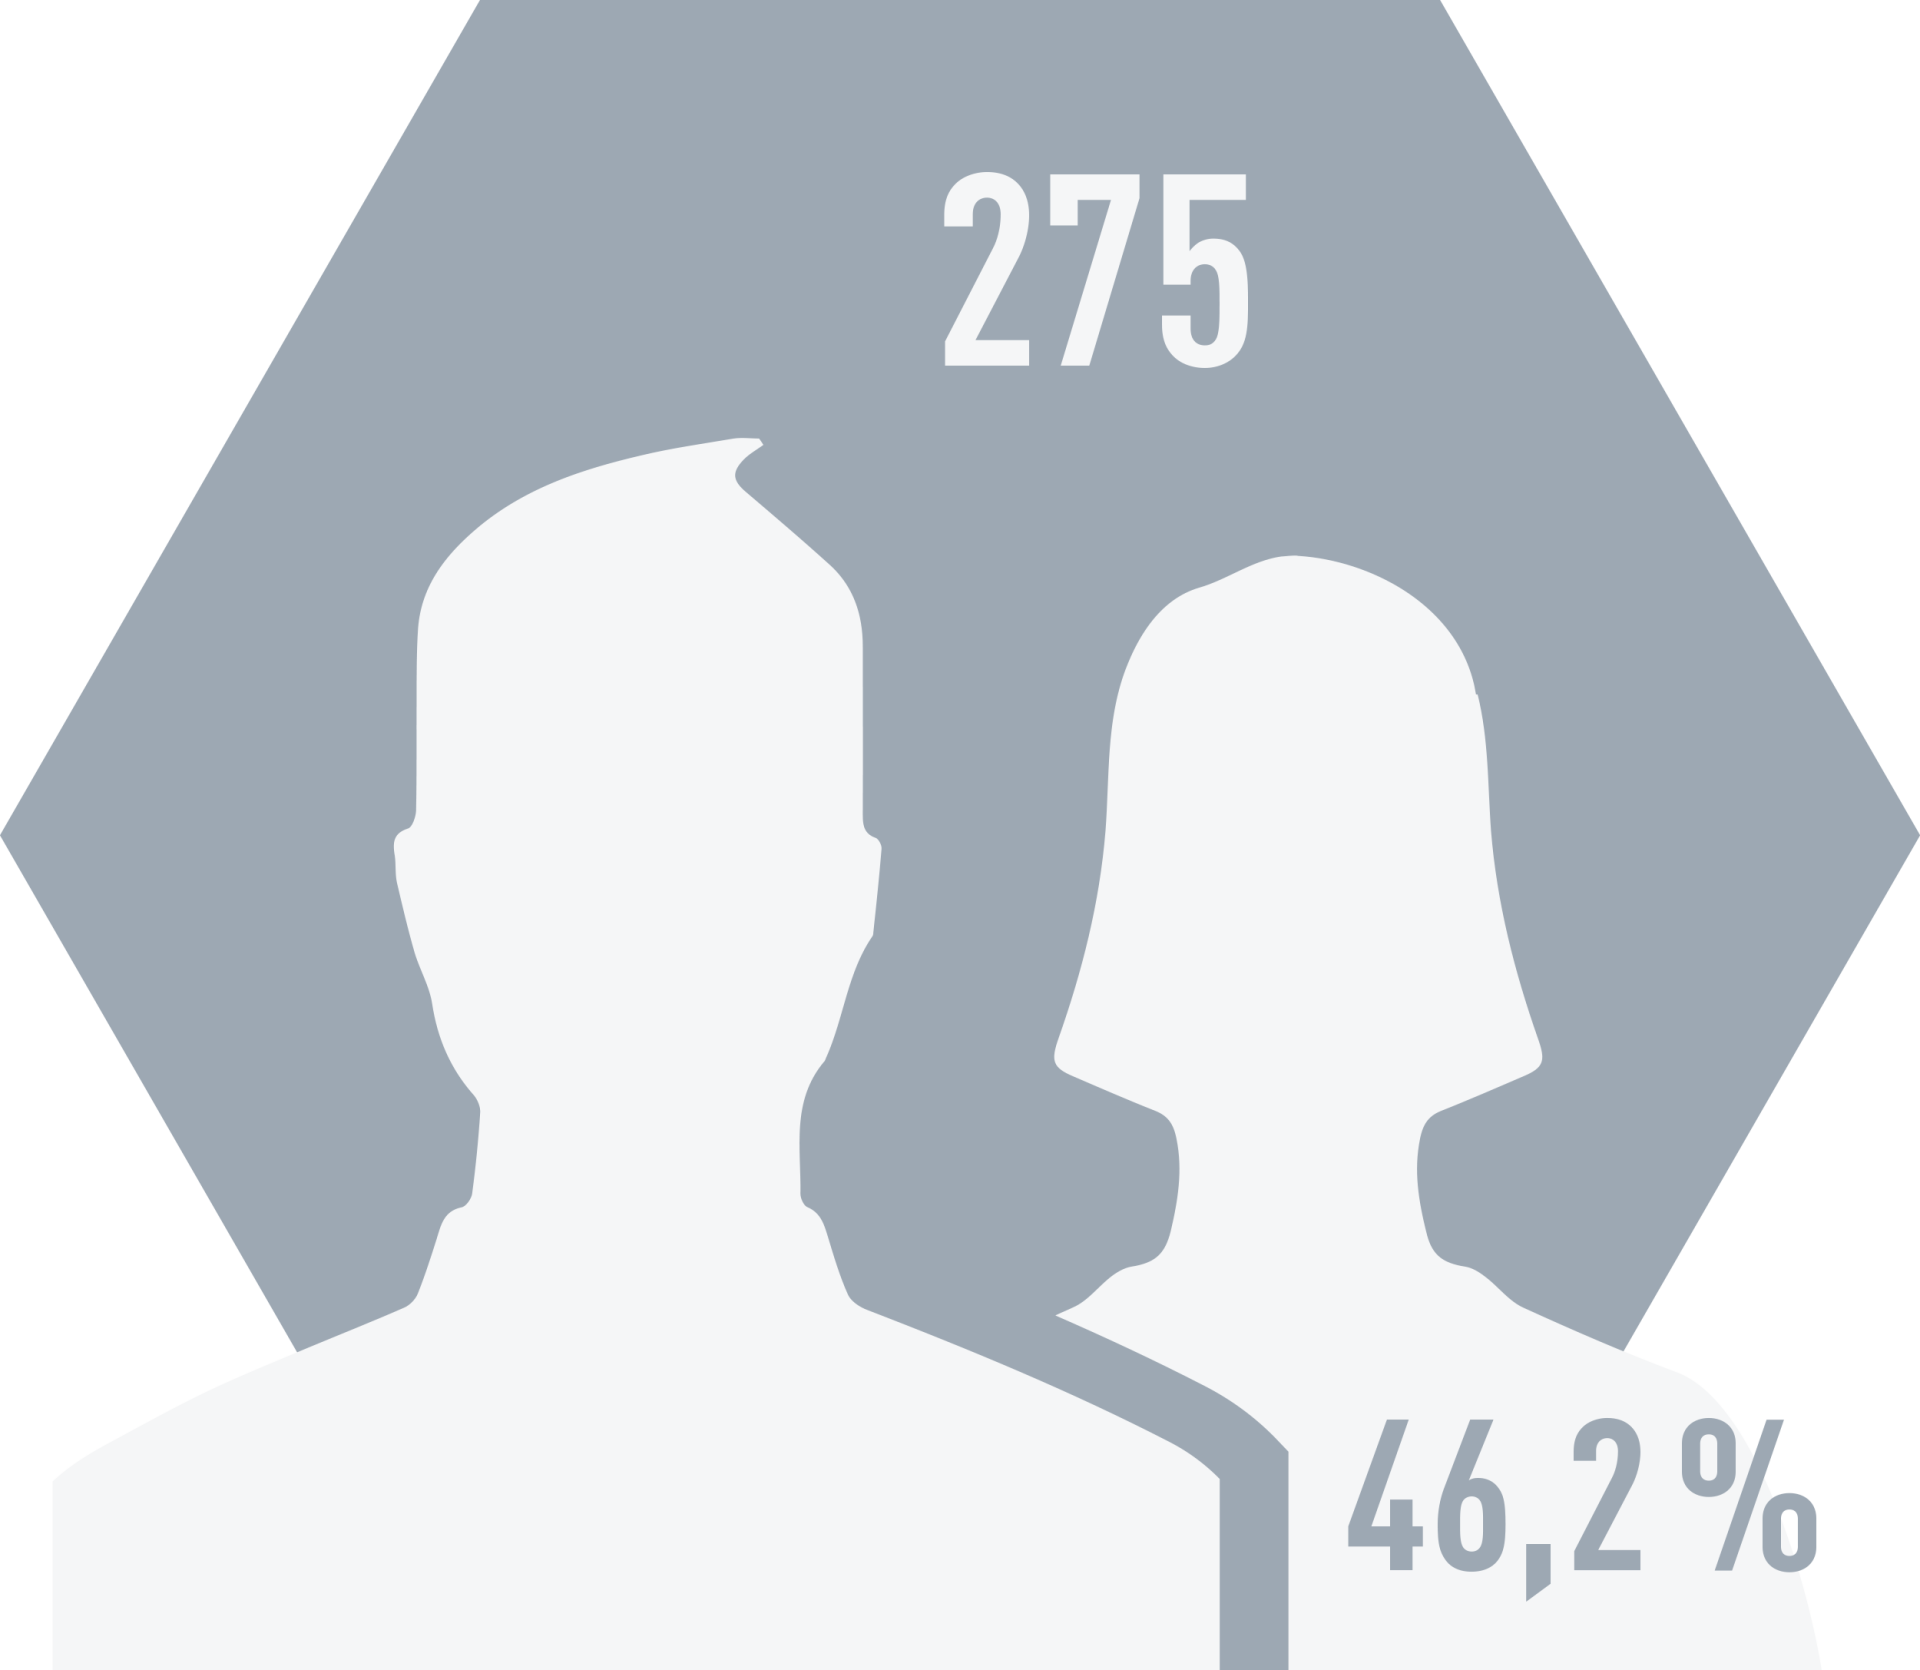 Number of employees (incl. temporary staff) as at 31 December 2019 258 employees, of whom 121 were women (46.9%)